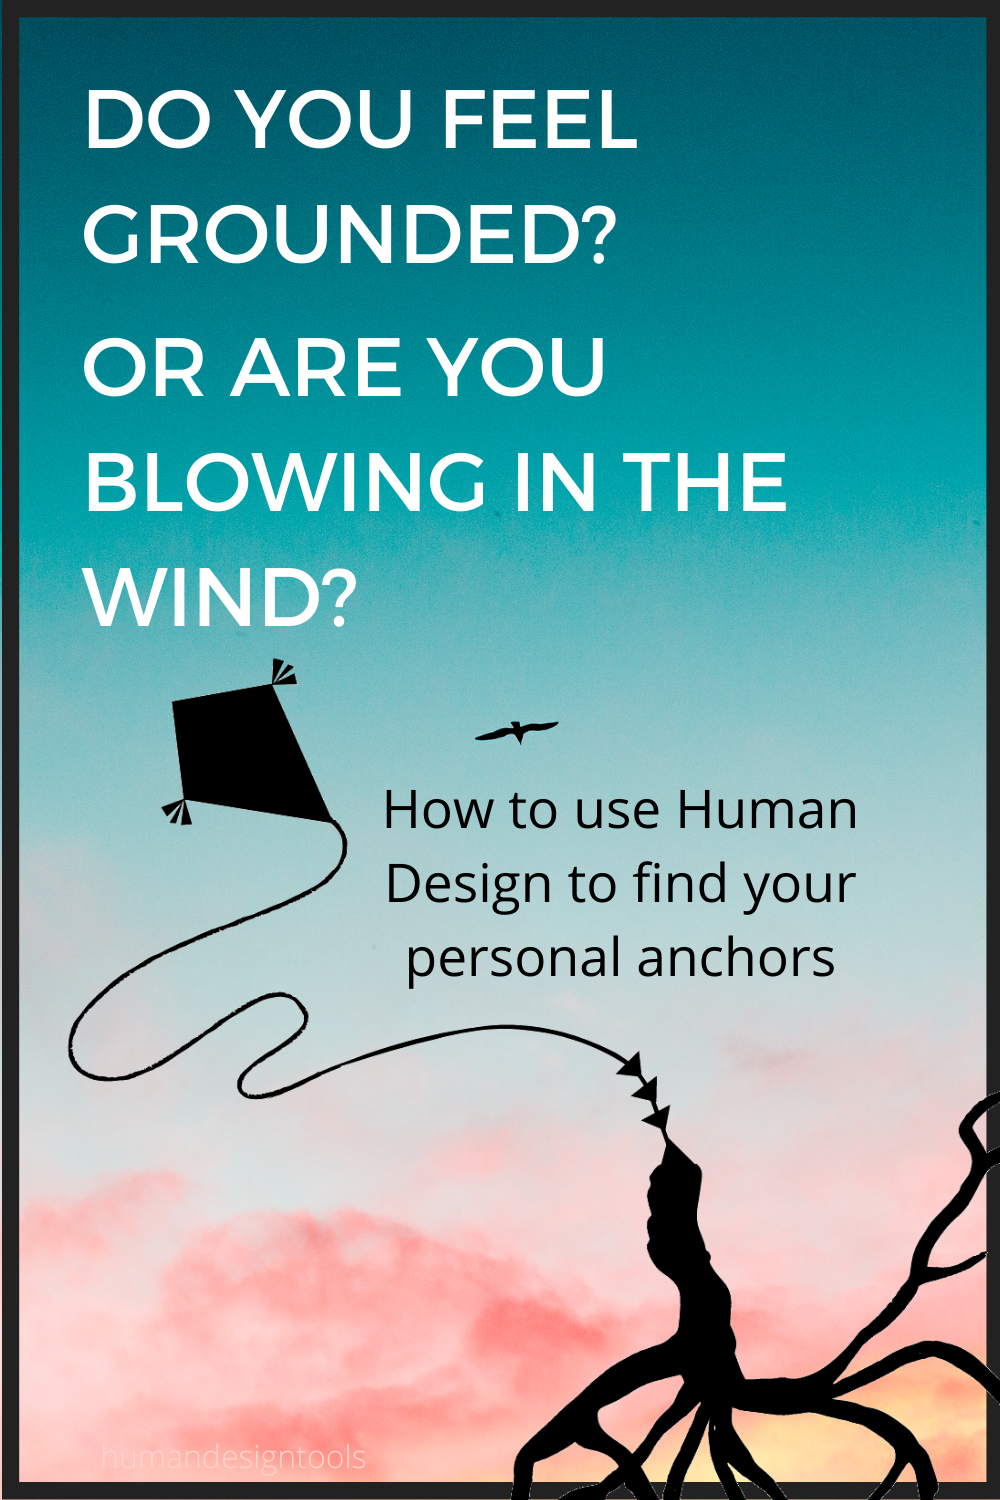 Do you feel anchored or like you are blowing in the wind?